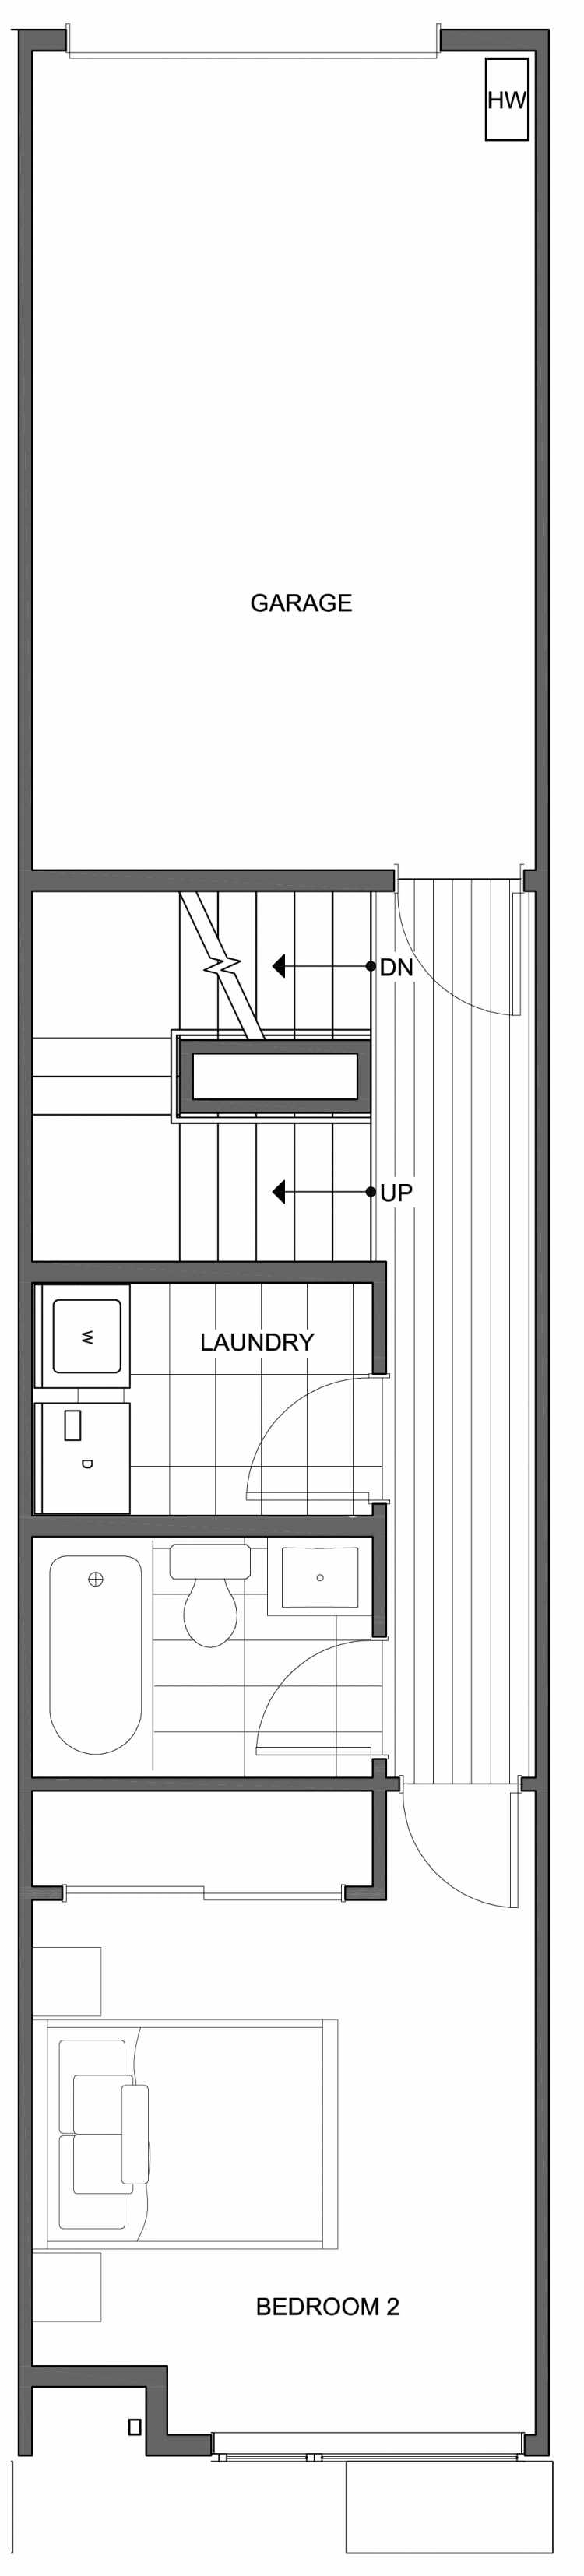 Second Floor Plan of 806D N 46th St, One of the Nino 15 East Townhomes by Isola Homes